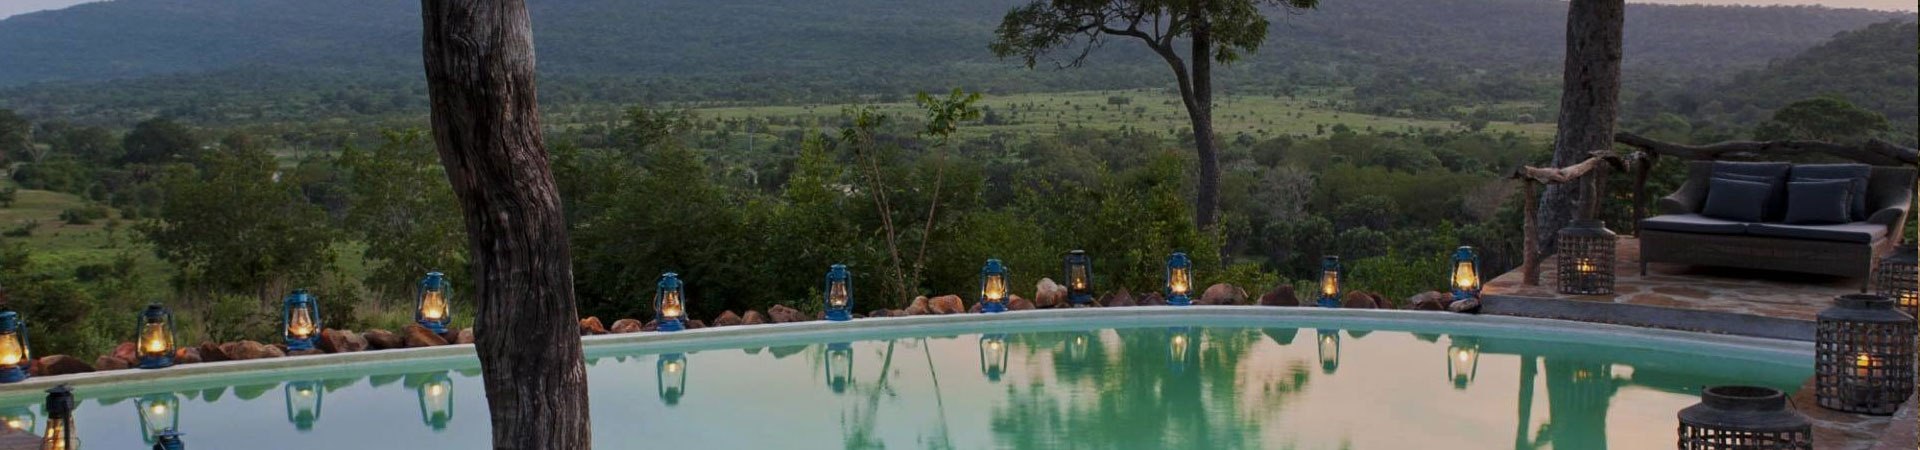 3-Days-Budget-Selous-Game-Reserve